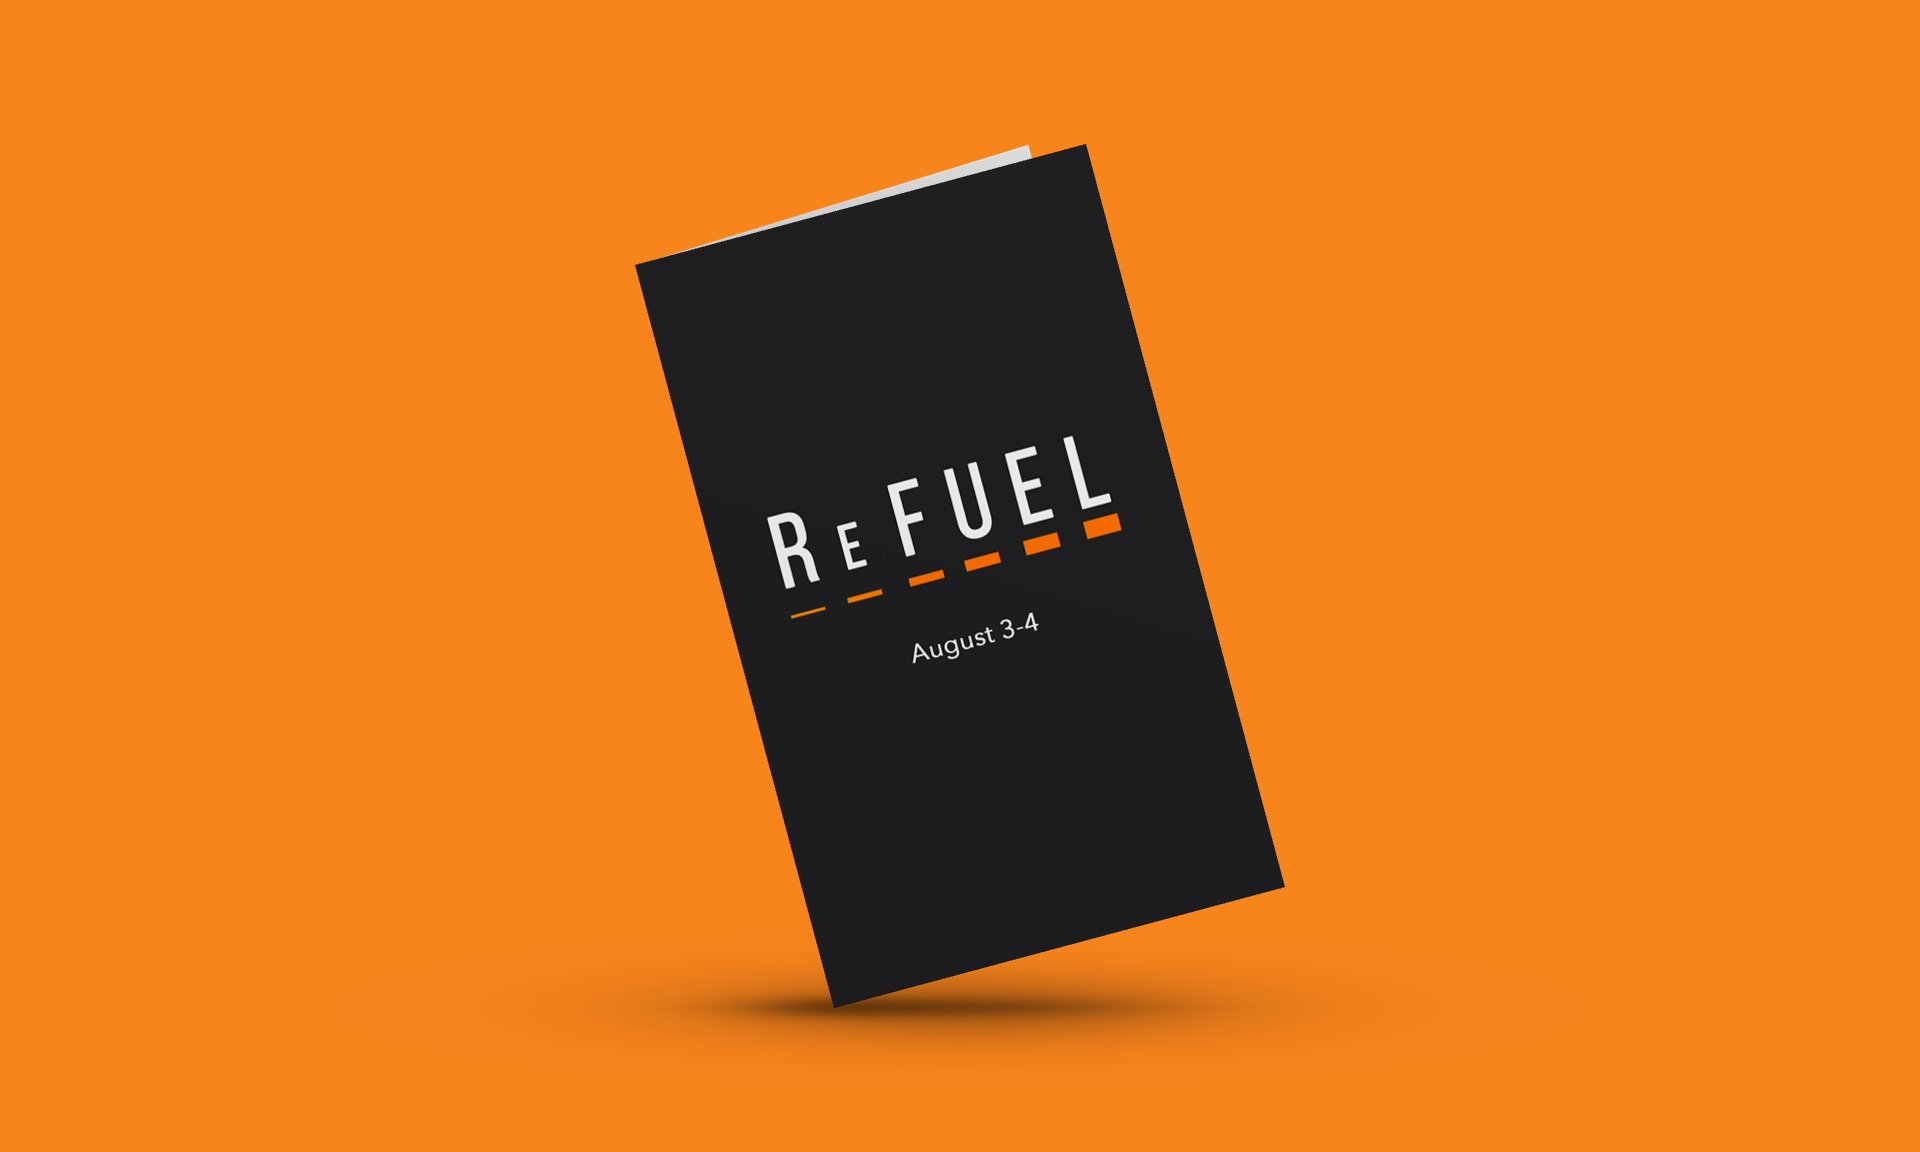 Dowload the Workbook - Click the button below to download the Refuel Workbook.